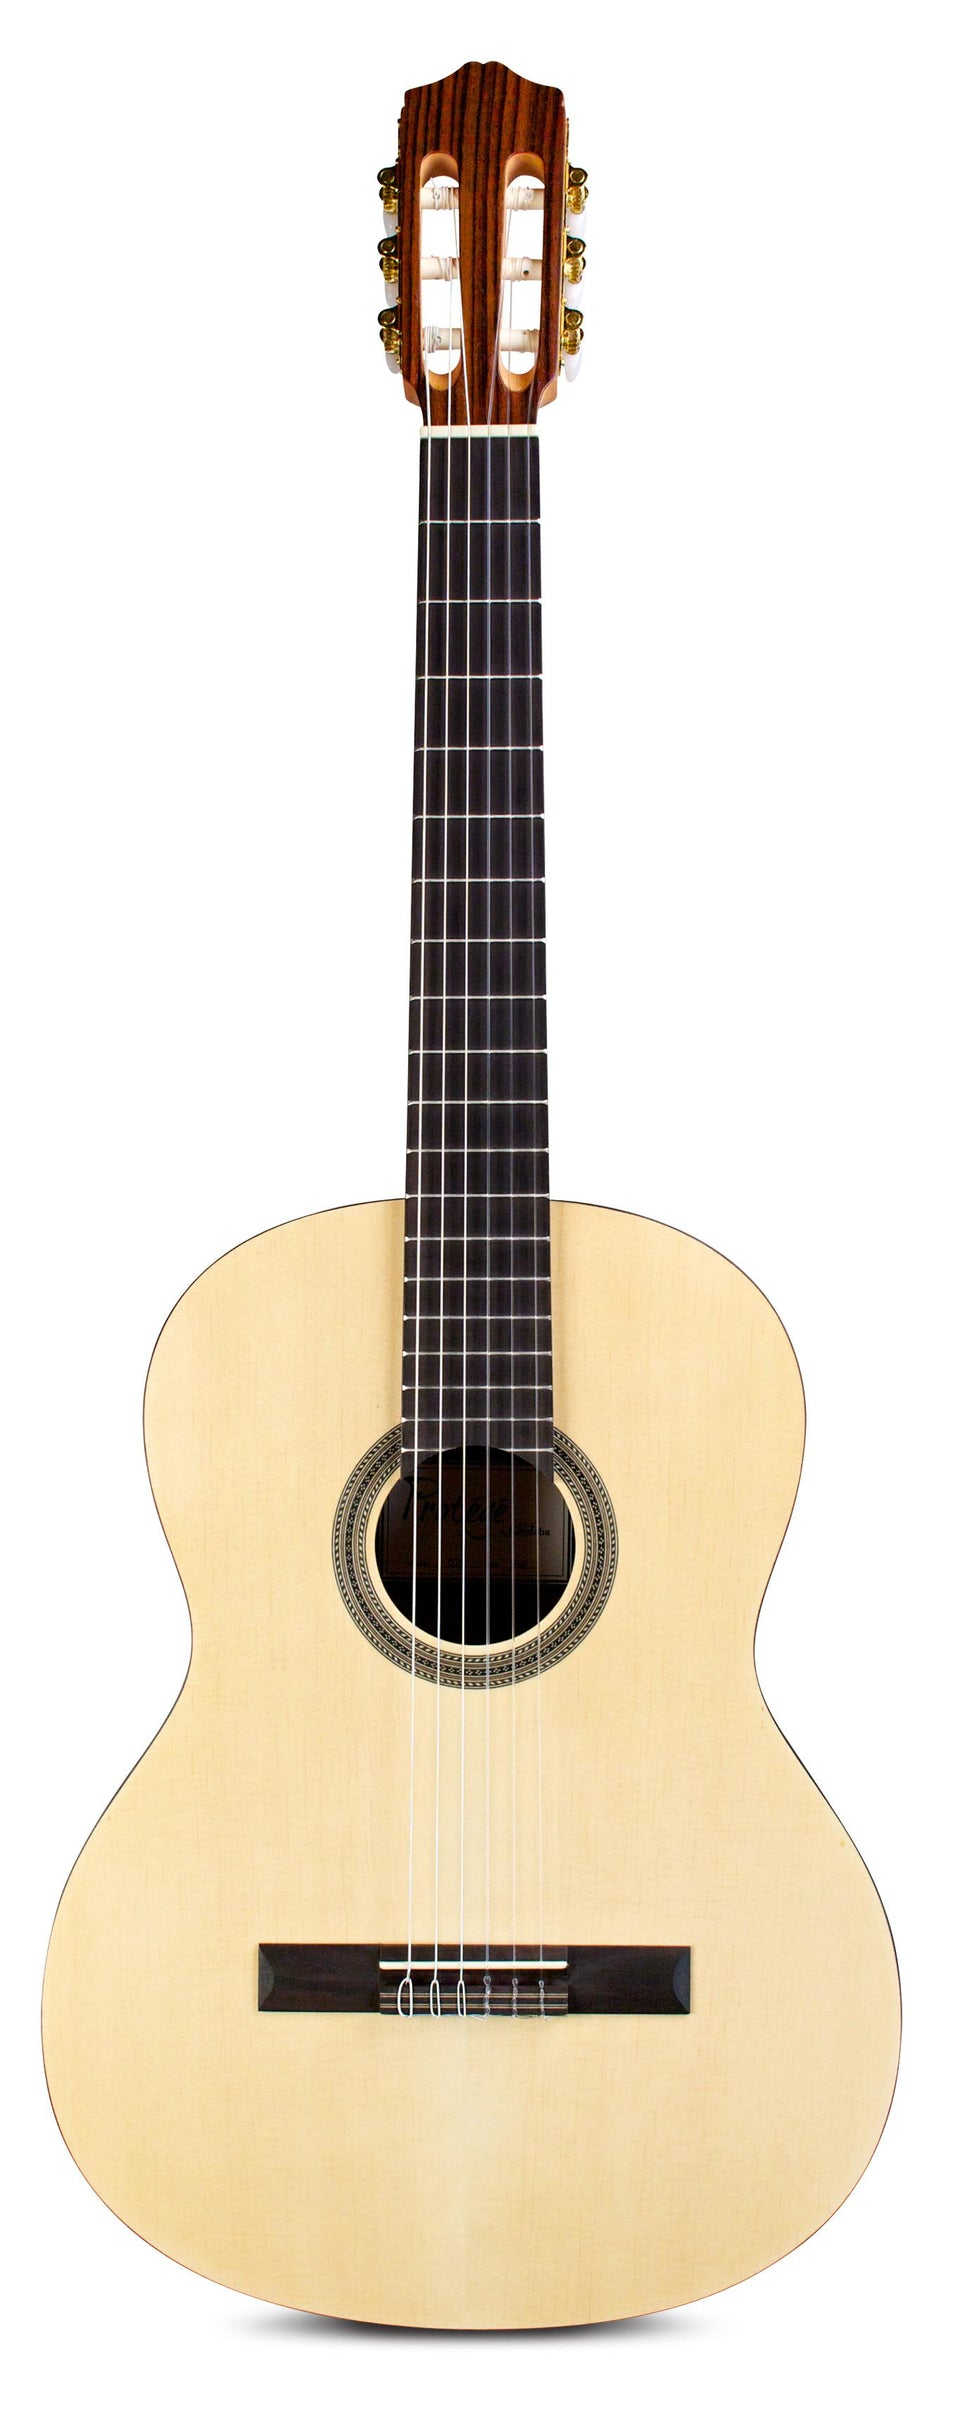 Cordoba C1M Nylon String Acoustic Guitar - Full Size